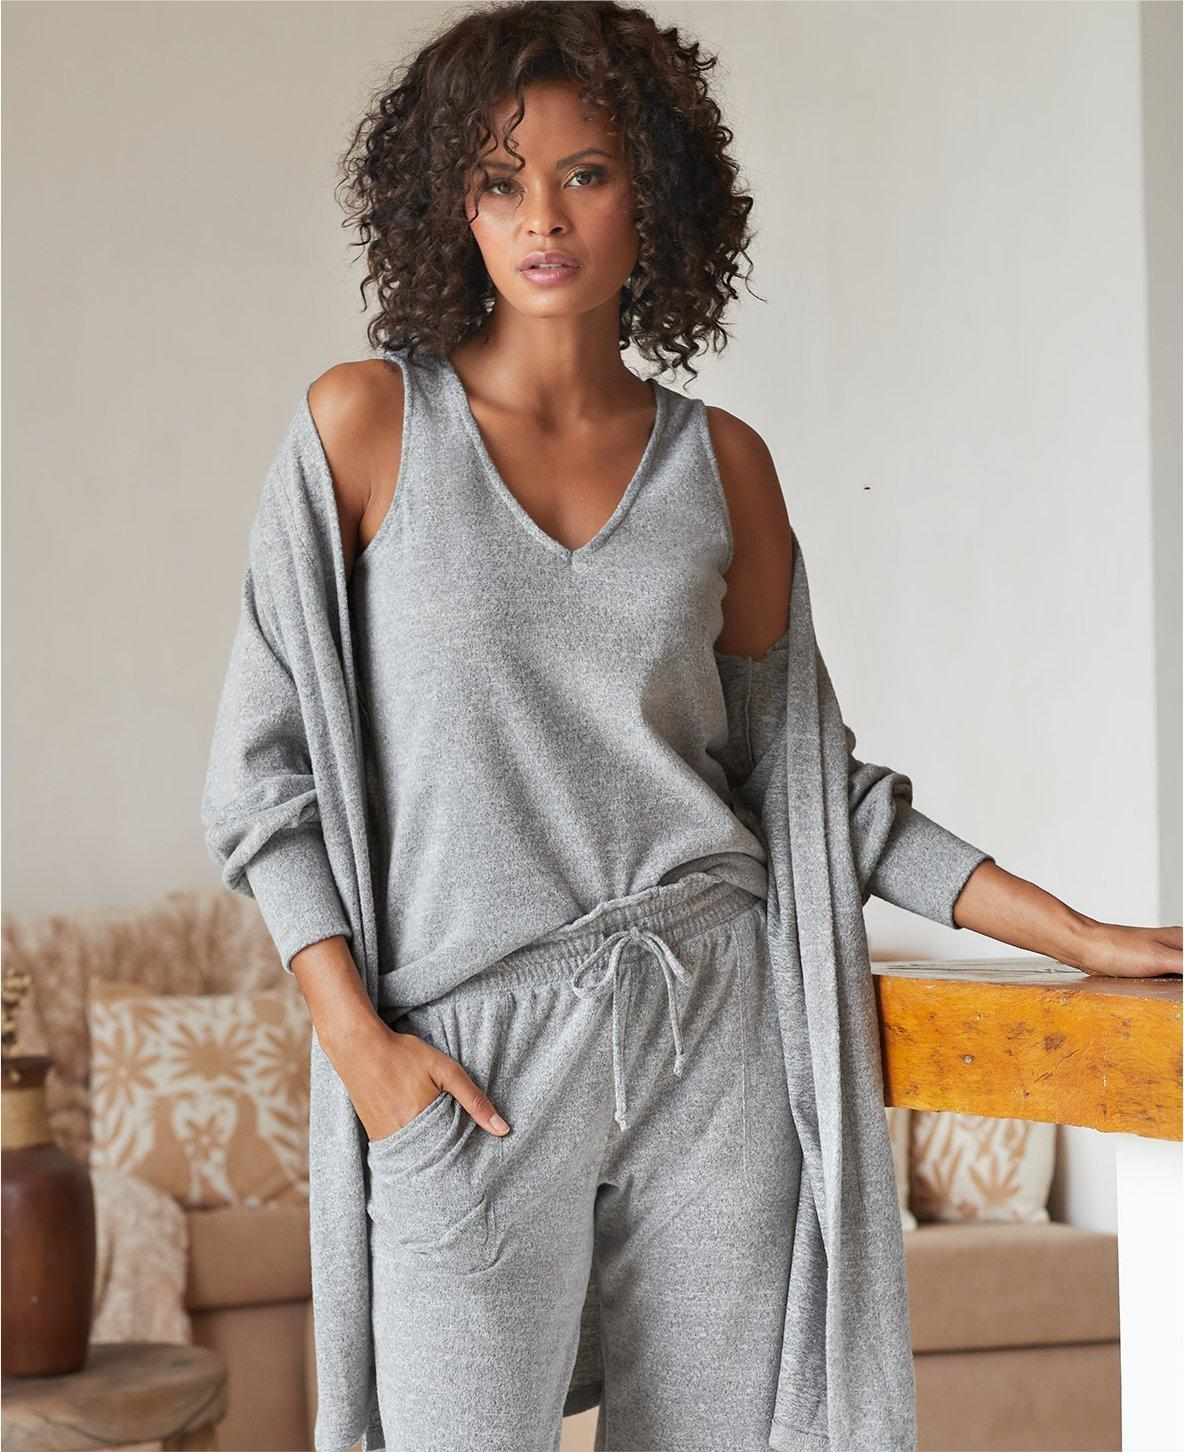 model wearing a gray tank top, gray duster, and gray sweatpants.